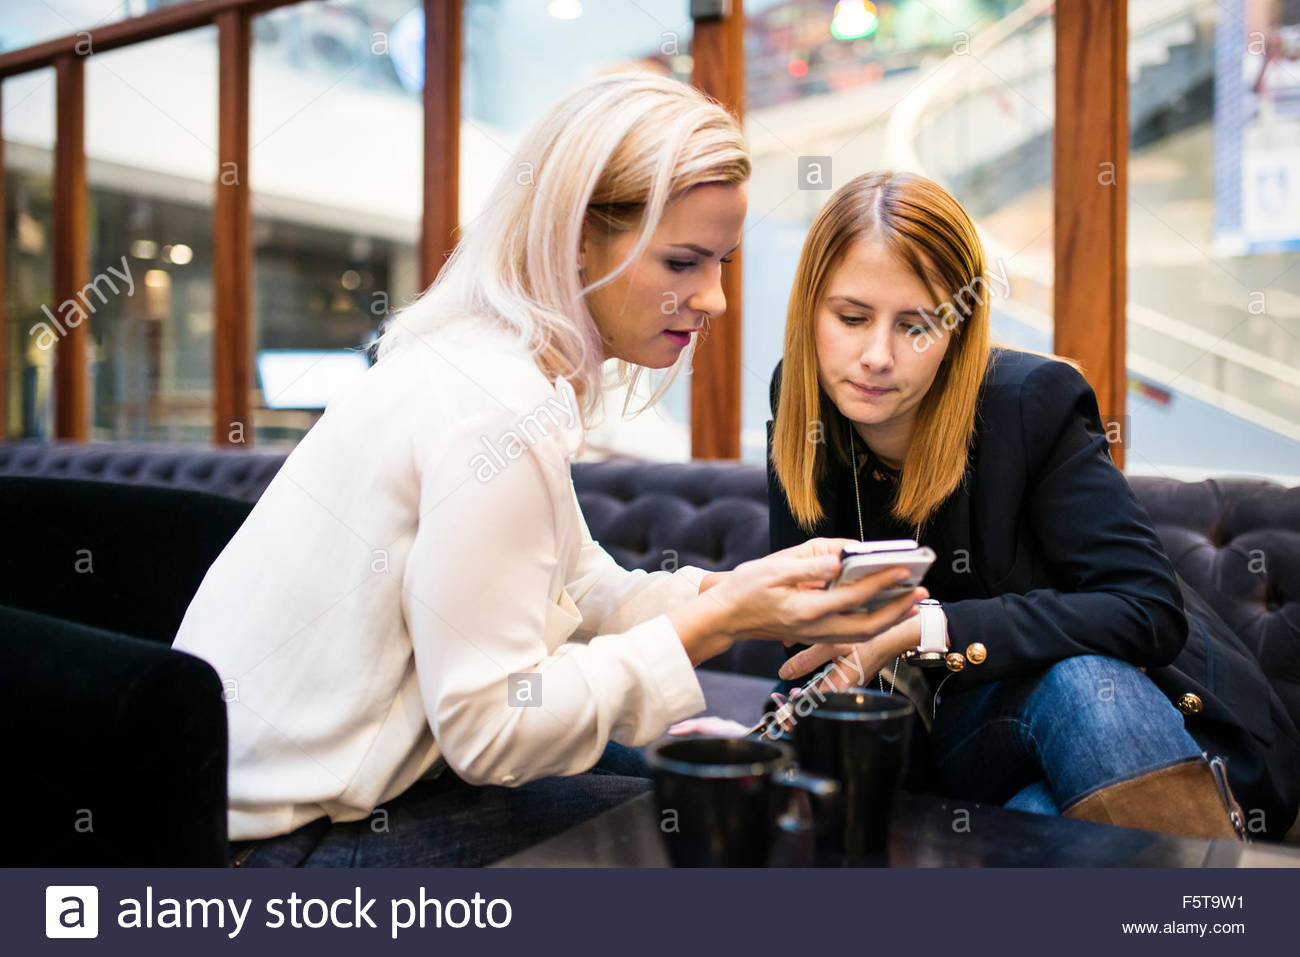 Finland, Two women looking at smartphone in office - Stock Image